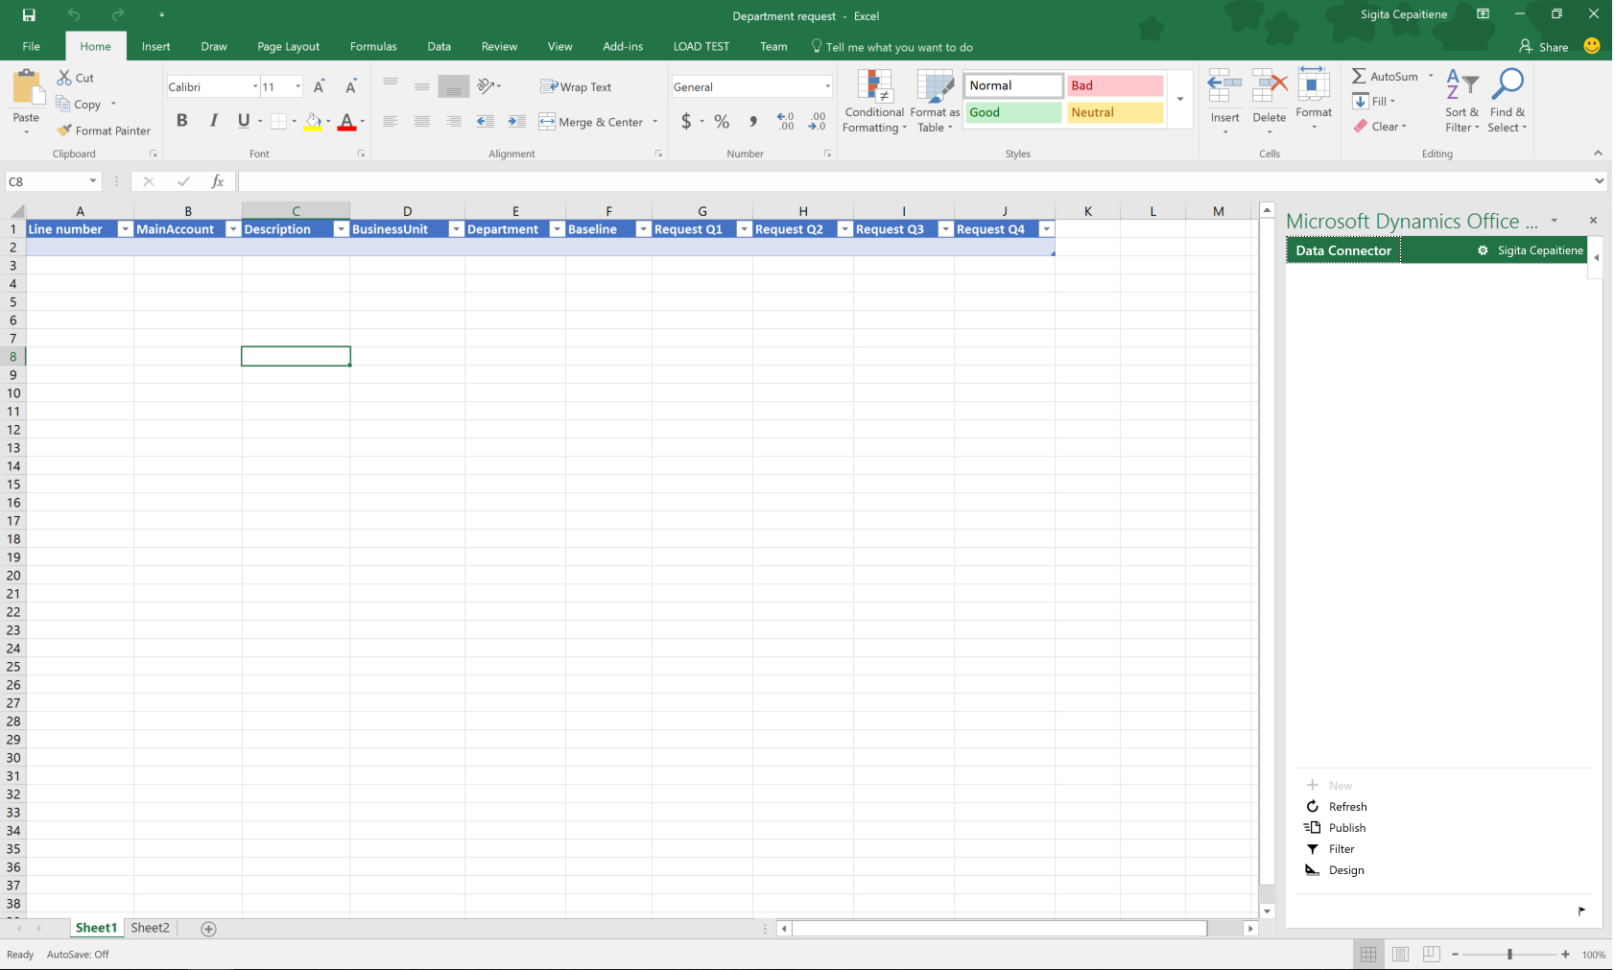 End Of Period Spreadsheet Template In Budget Planning Templates For Excel  Finance  Operations